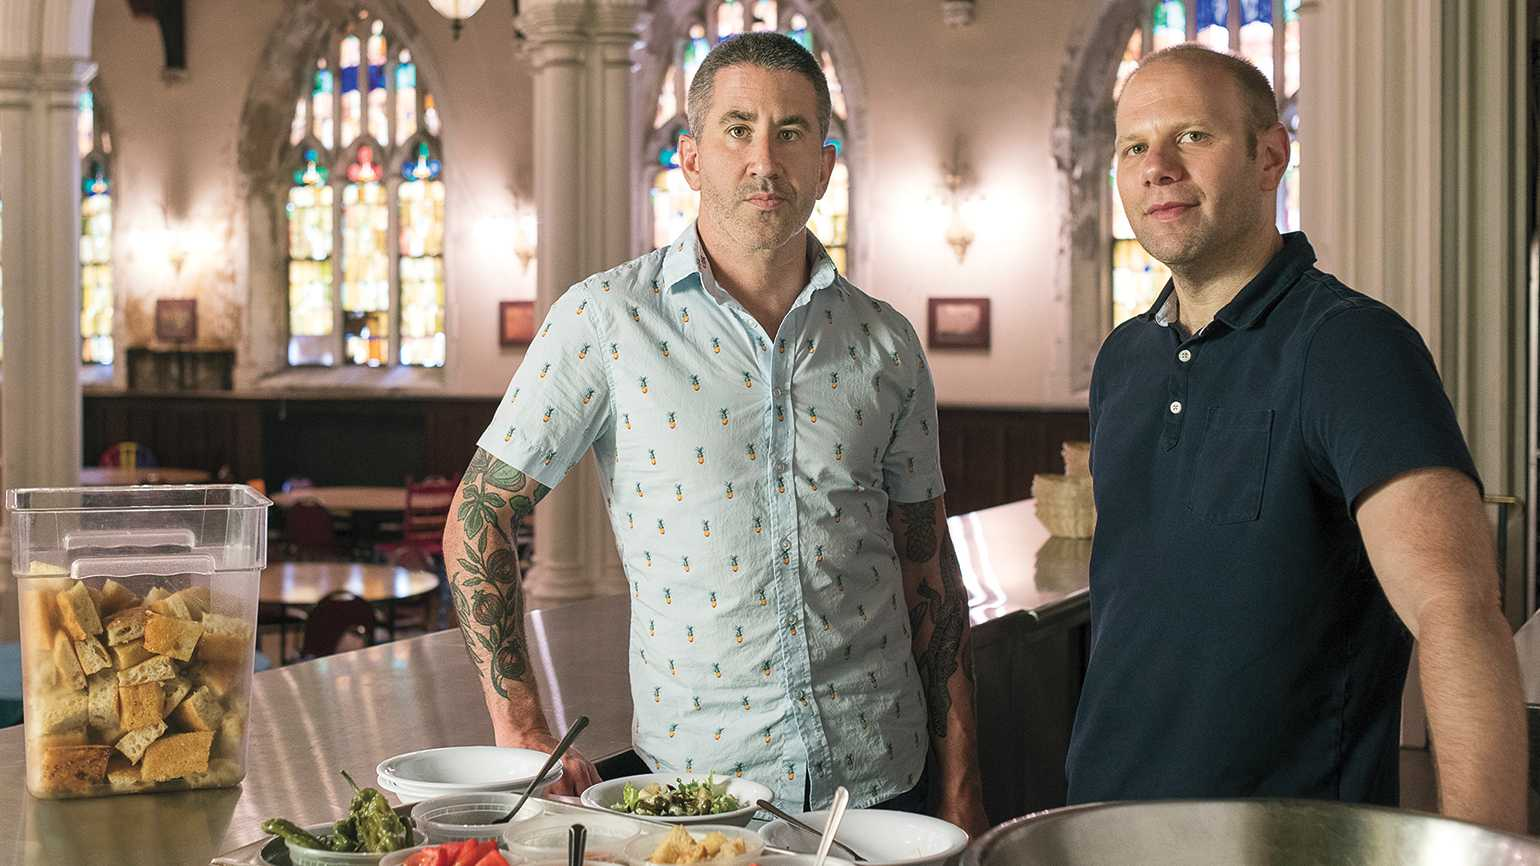 Having Overcome Addiction, This Acclaimed Chef Gives Back to Others